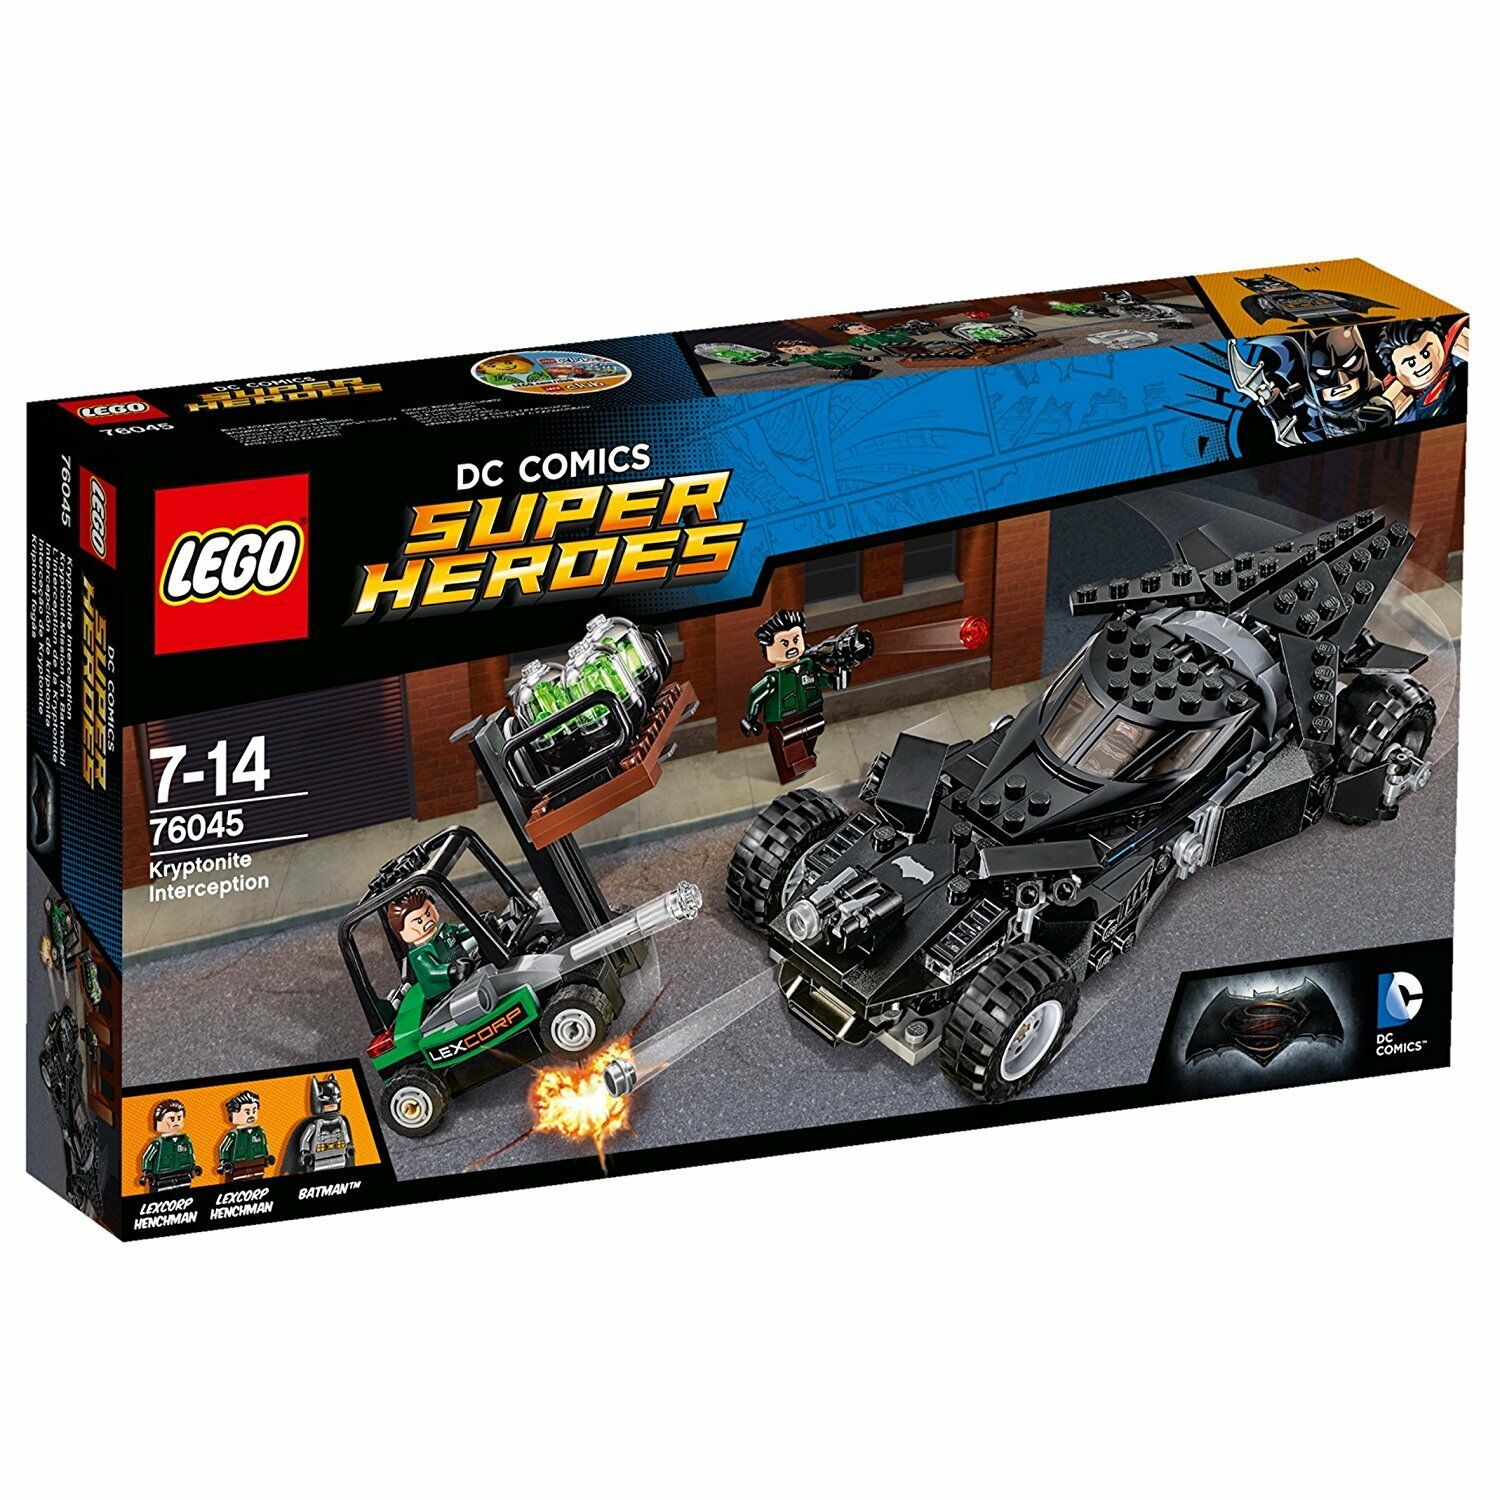 LEGO Super Heroes 76045  Kryptonite Interception - Brand New